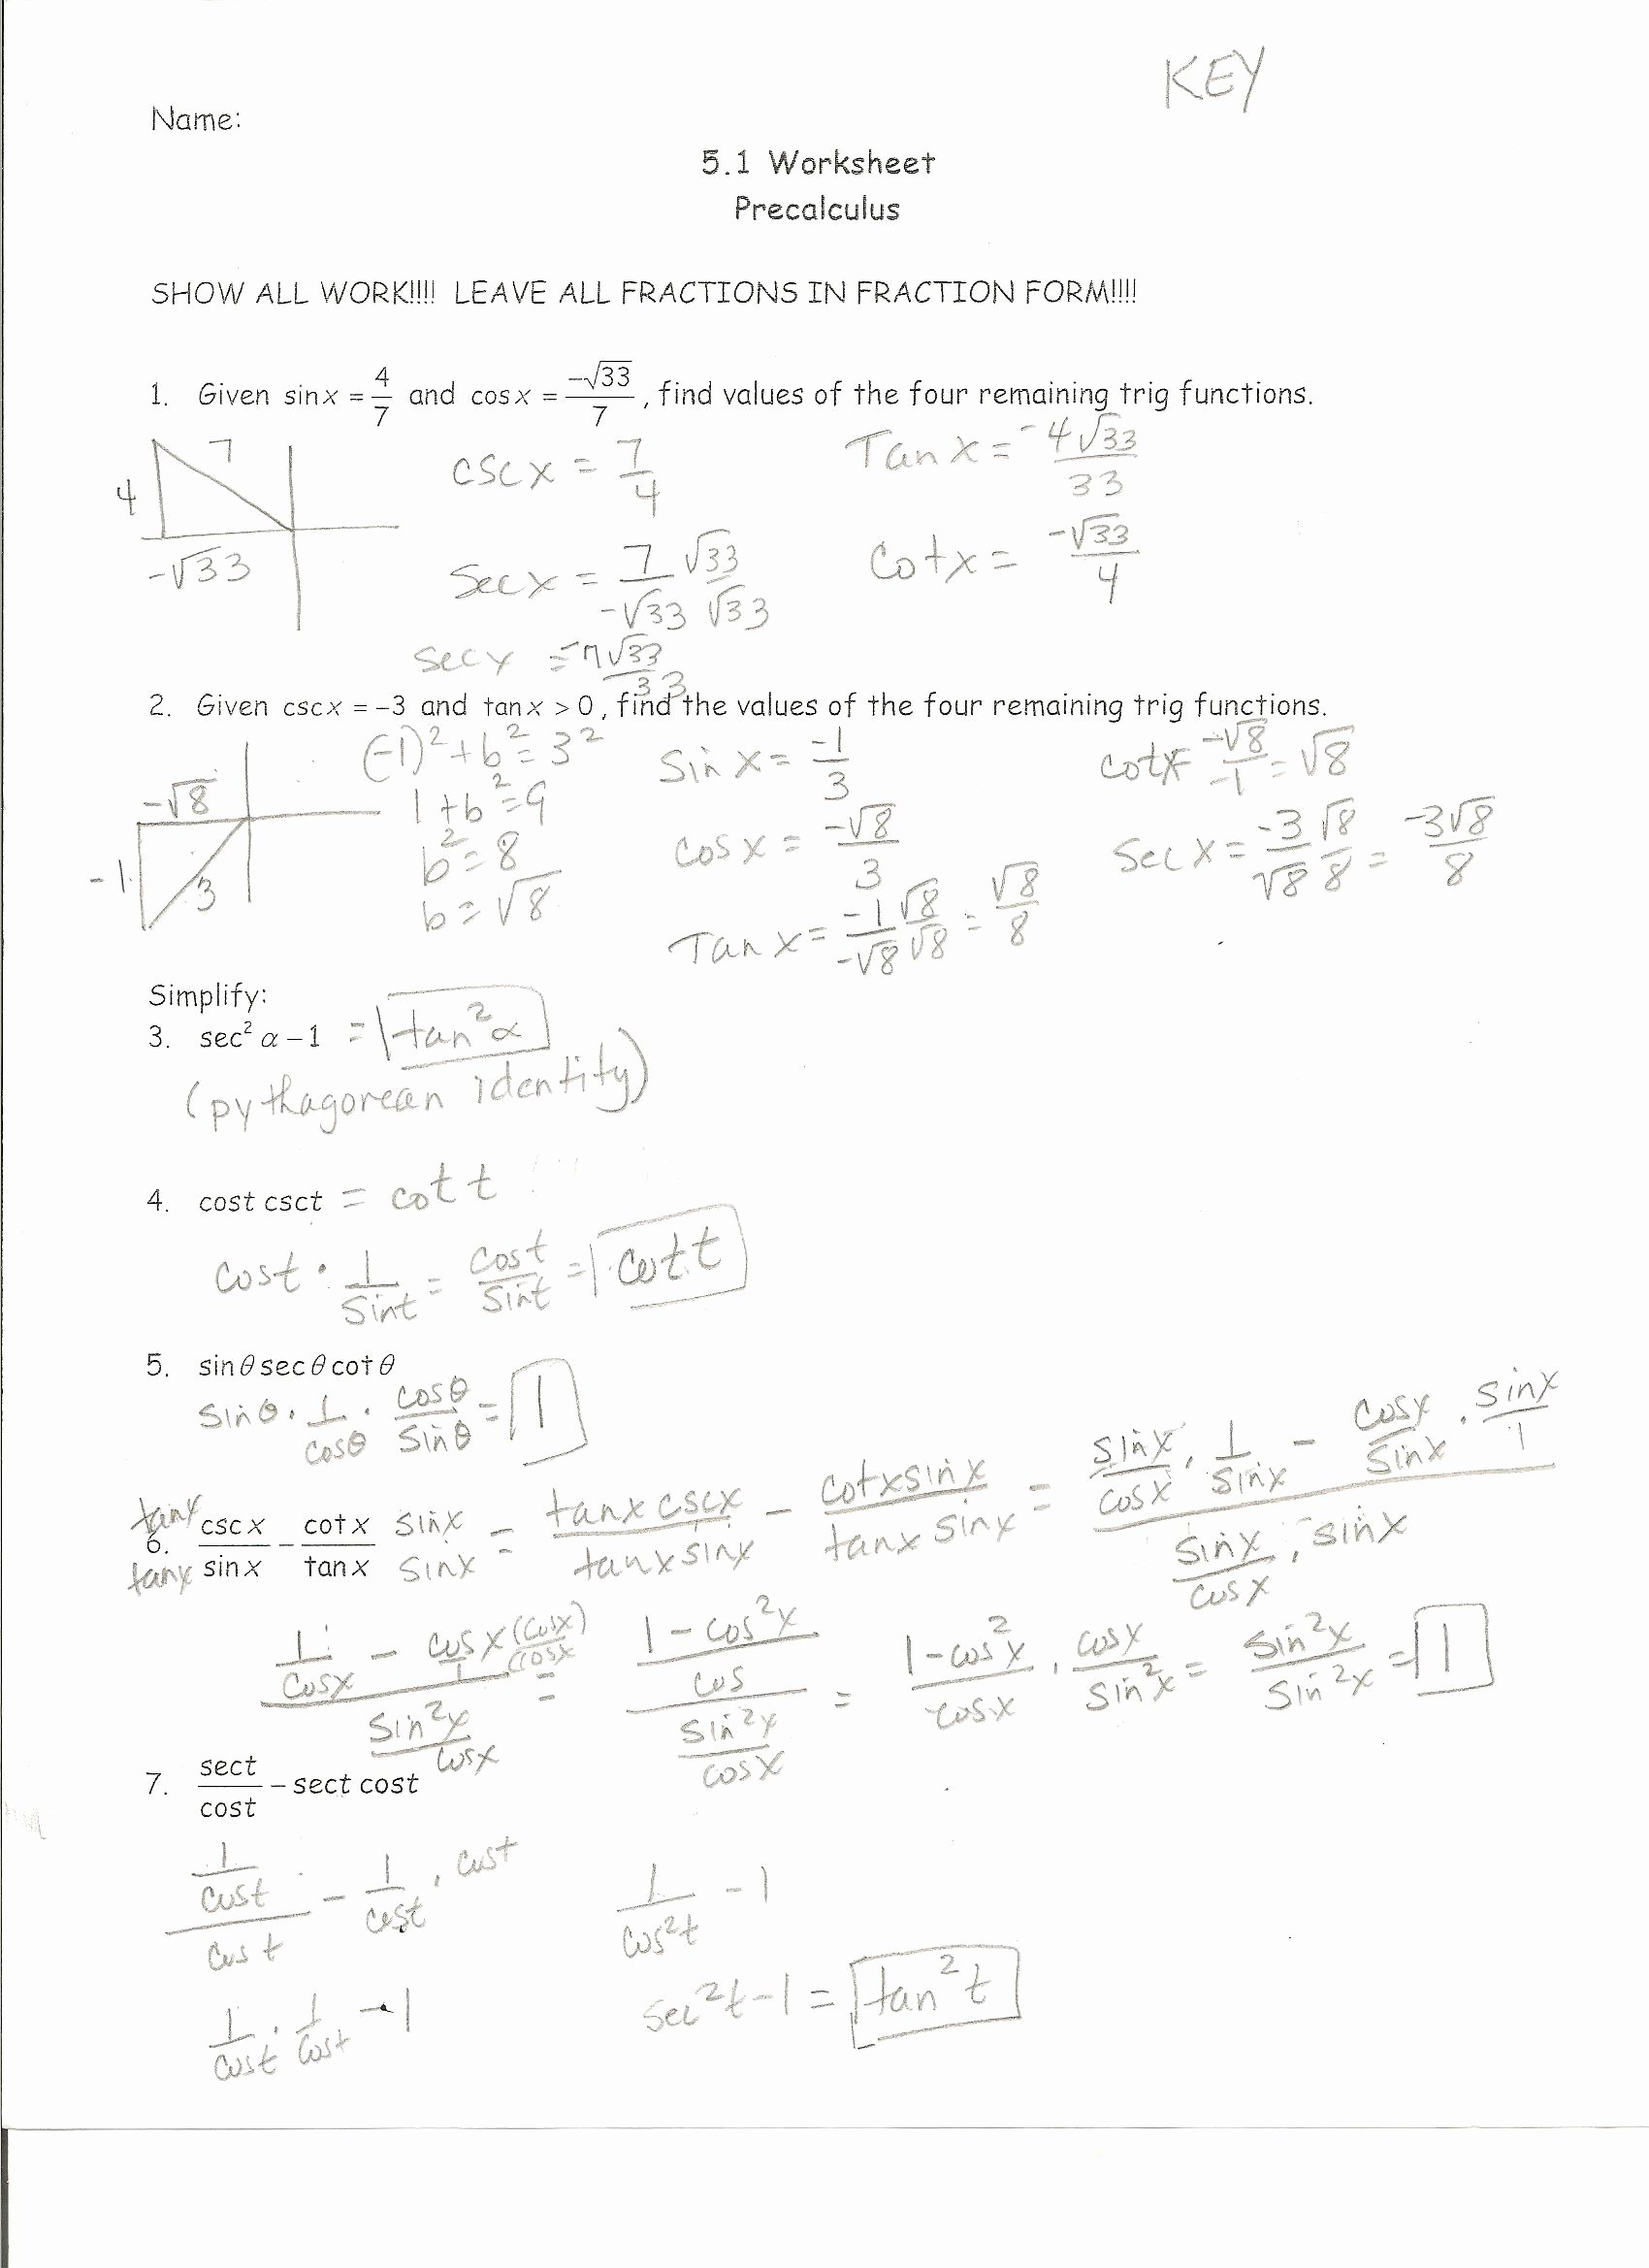 Interval Notation Worksheet with Answers Fresh Math Precalculus Laba Worksheet 5 1 Key